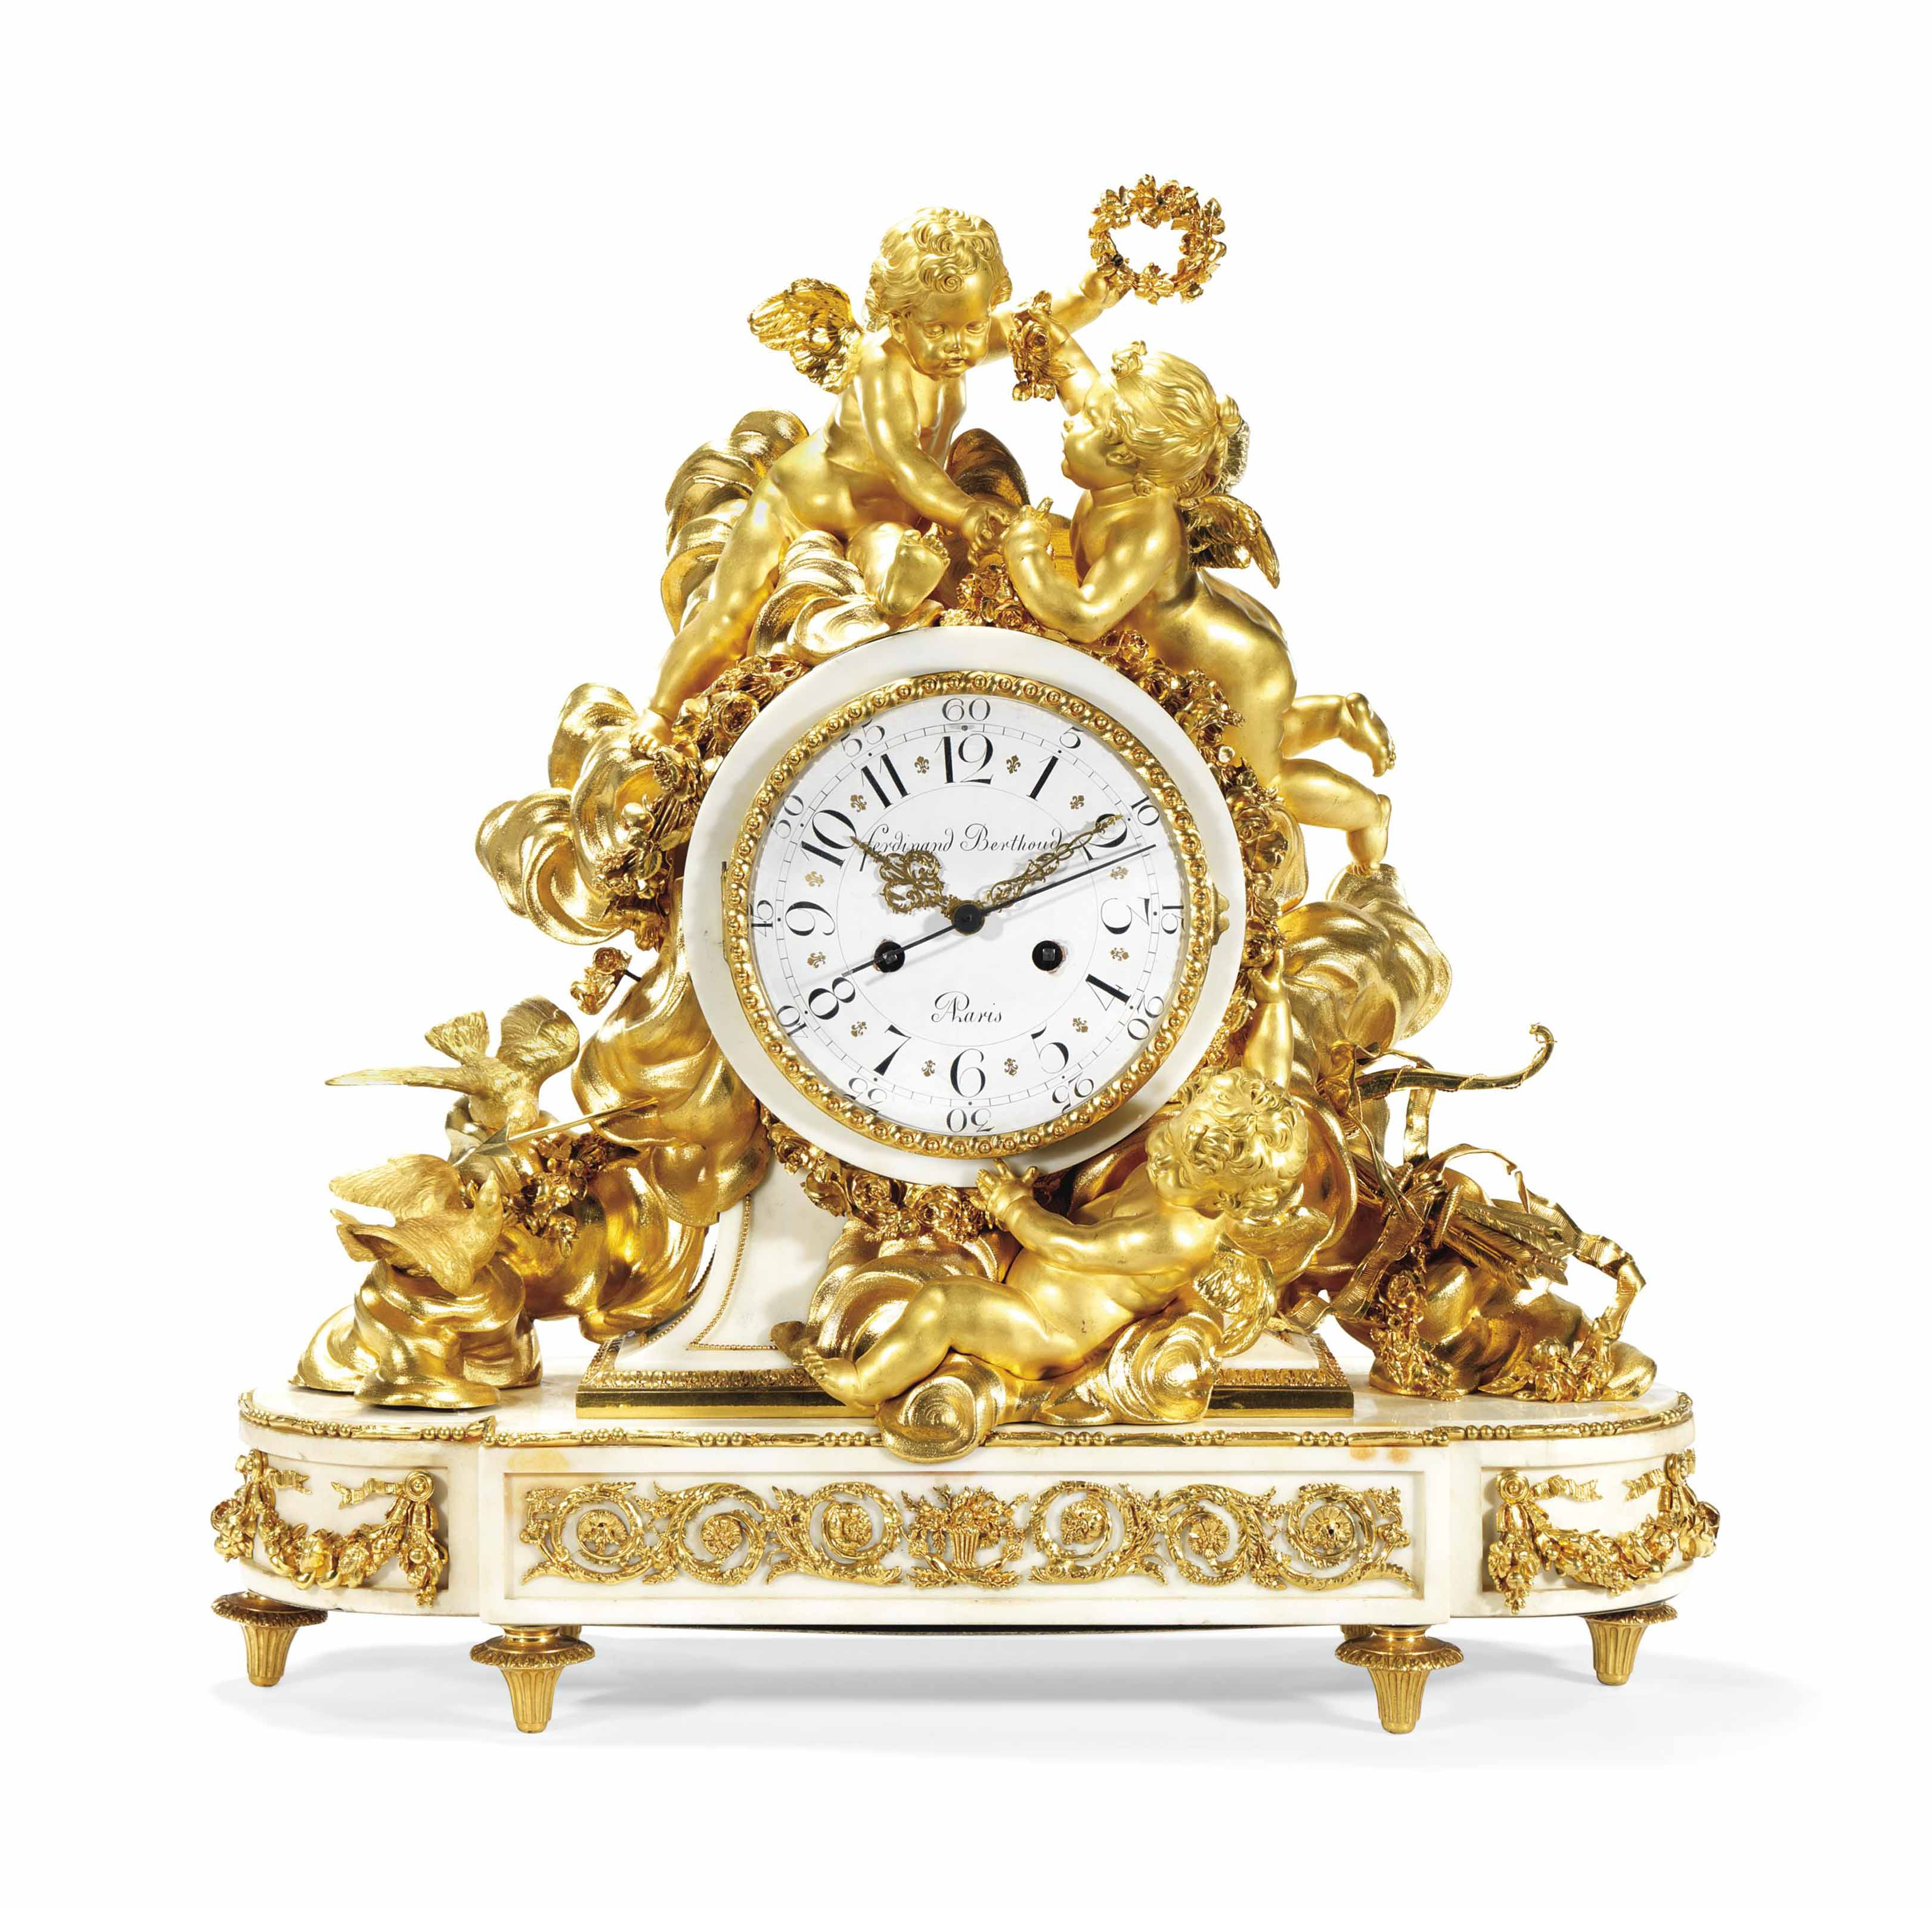 A FRENCH ORMOLU AND MARBLE MANTEL CLOCK